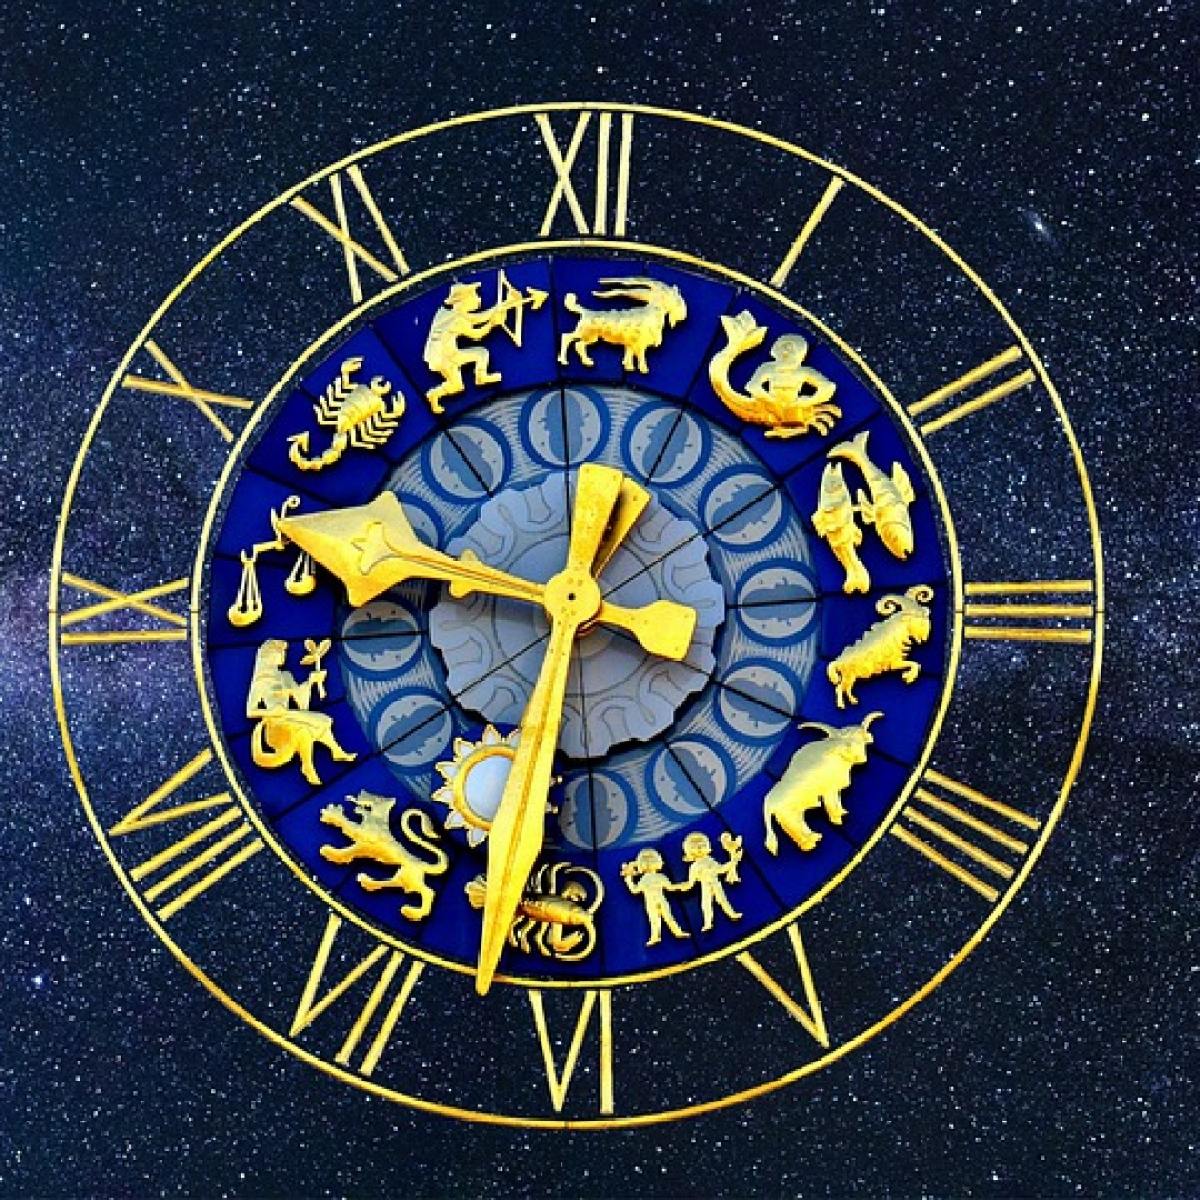 Daily Horoscope for Sunday, May 9, 2021, for all zodiac signs